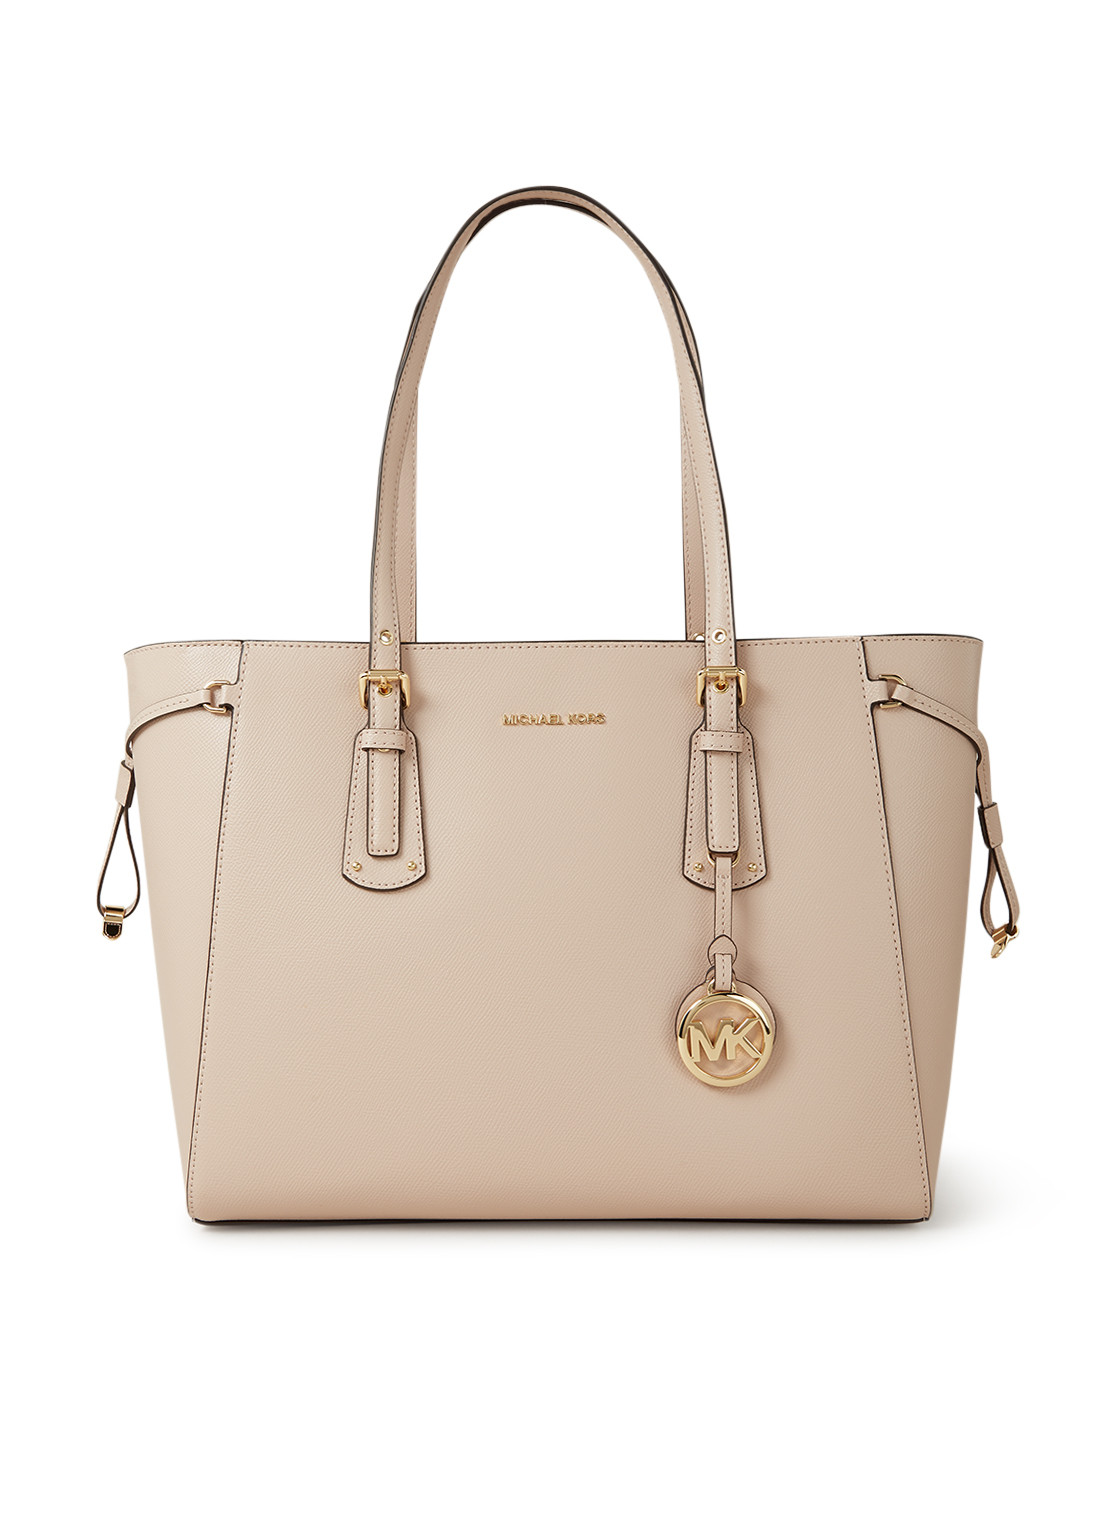 Michael Kors Voyager Medium schoudertas met logo